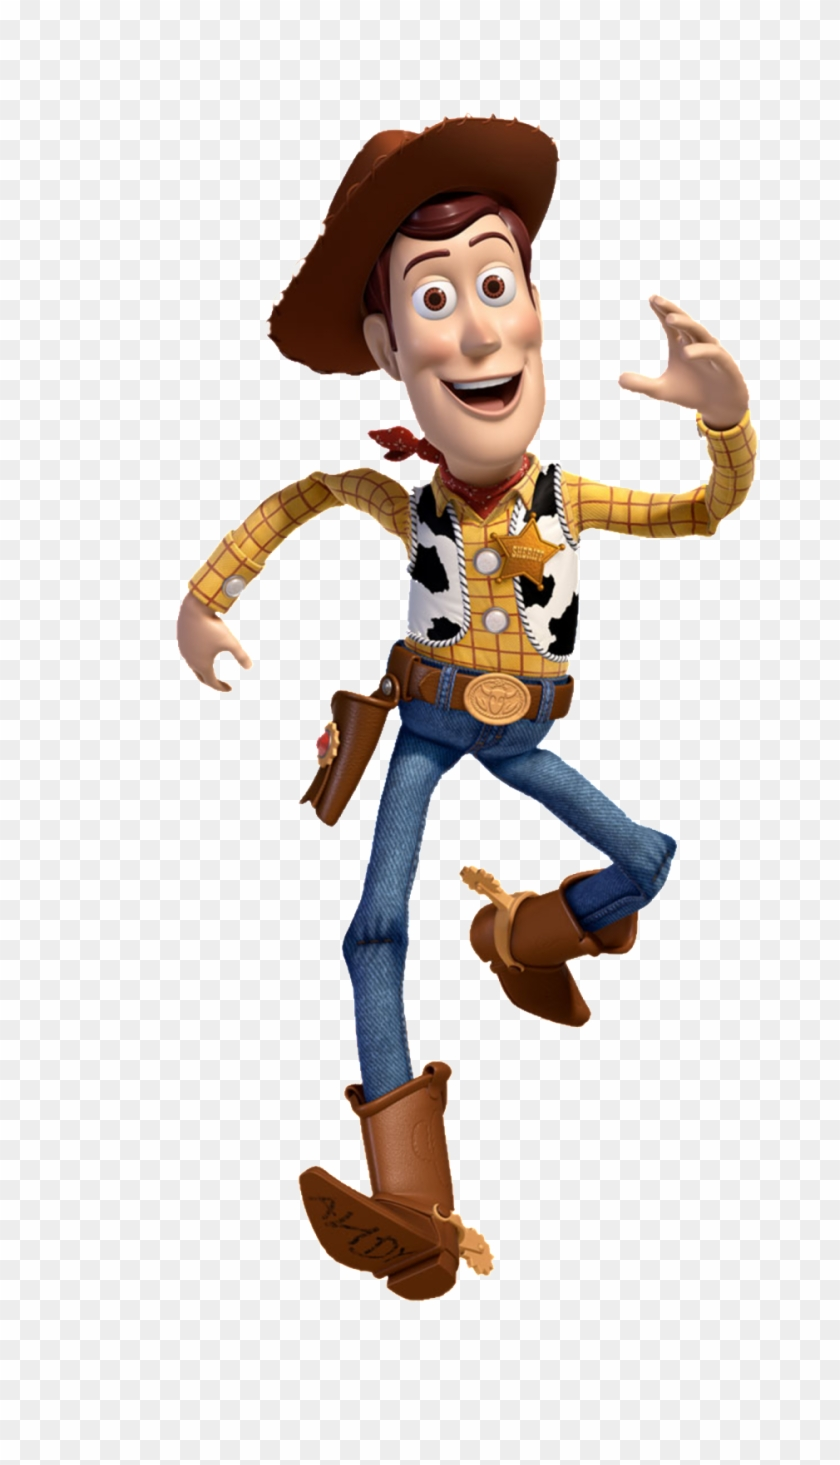 Woody From Toy Story #28557